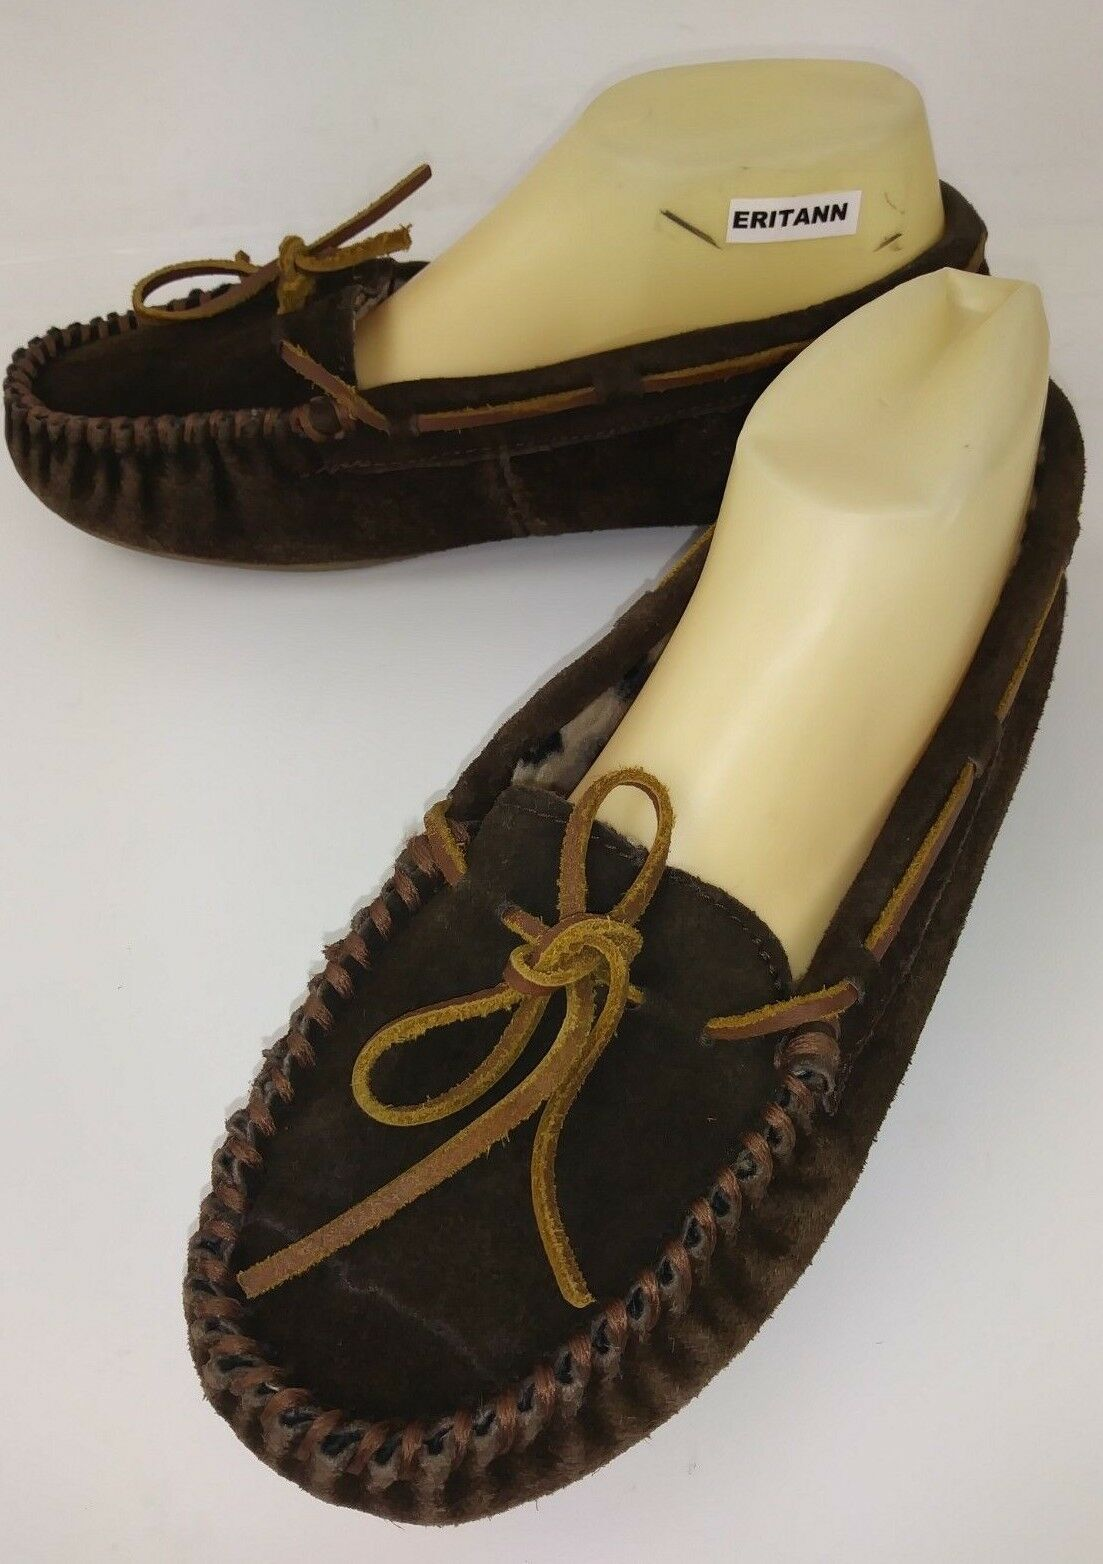 Minnetonka 40317 Wos Moccasin Slipper US10 Brown Suede Faux Fur Lined shoes 5921